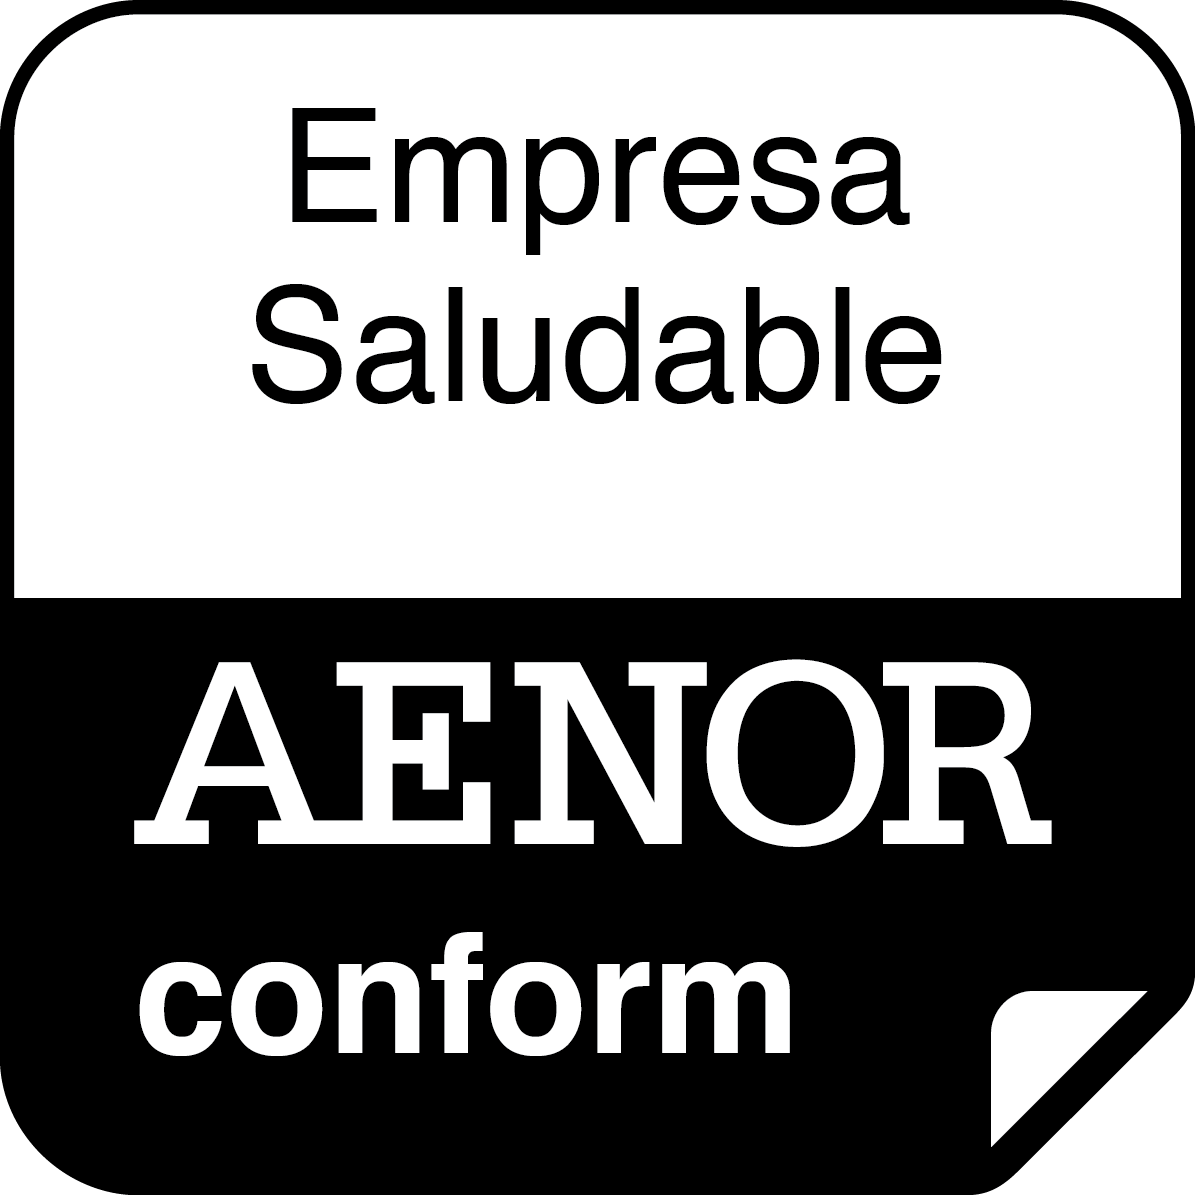 Healthy Company AENOR conform